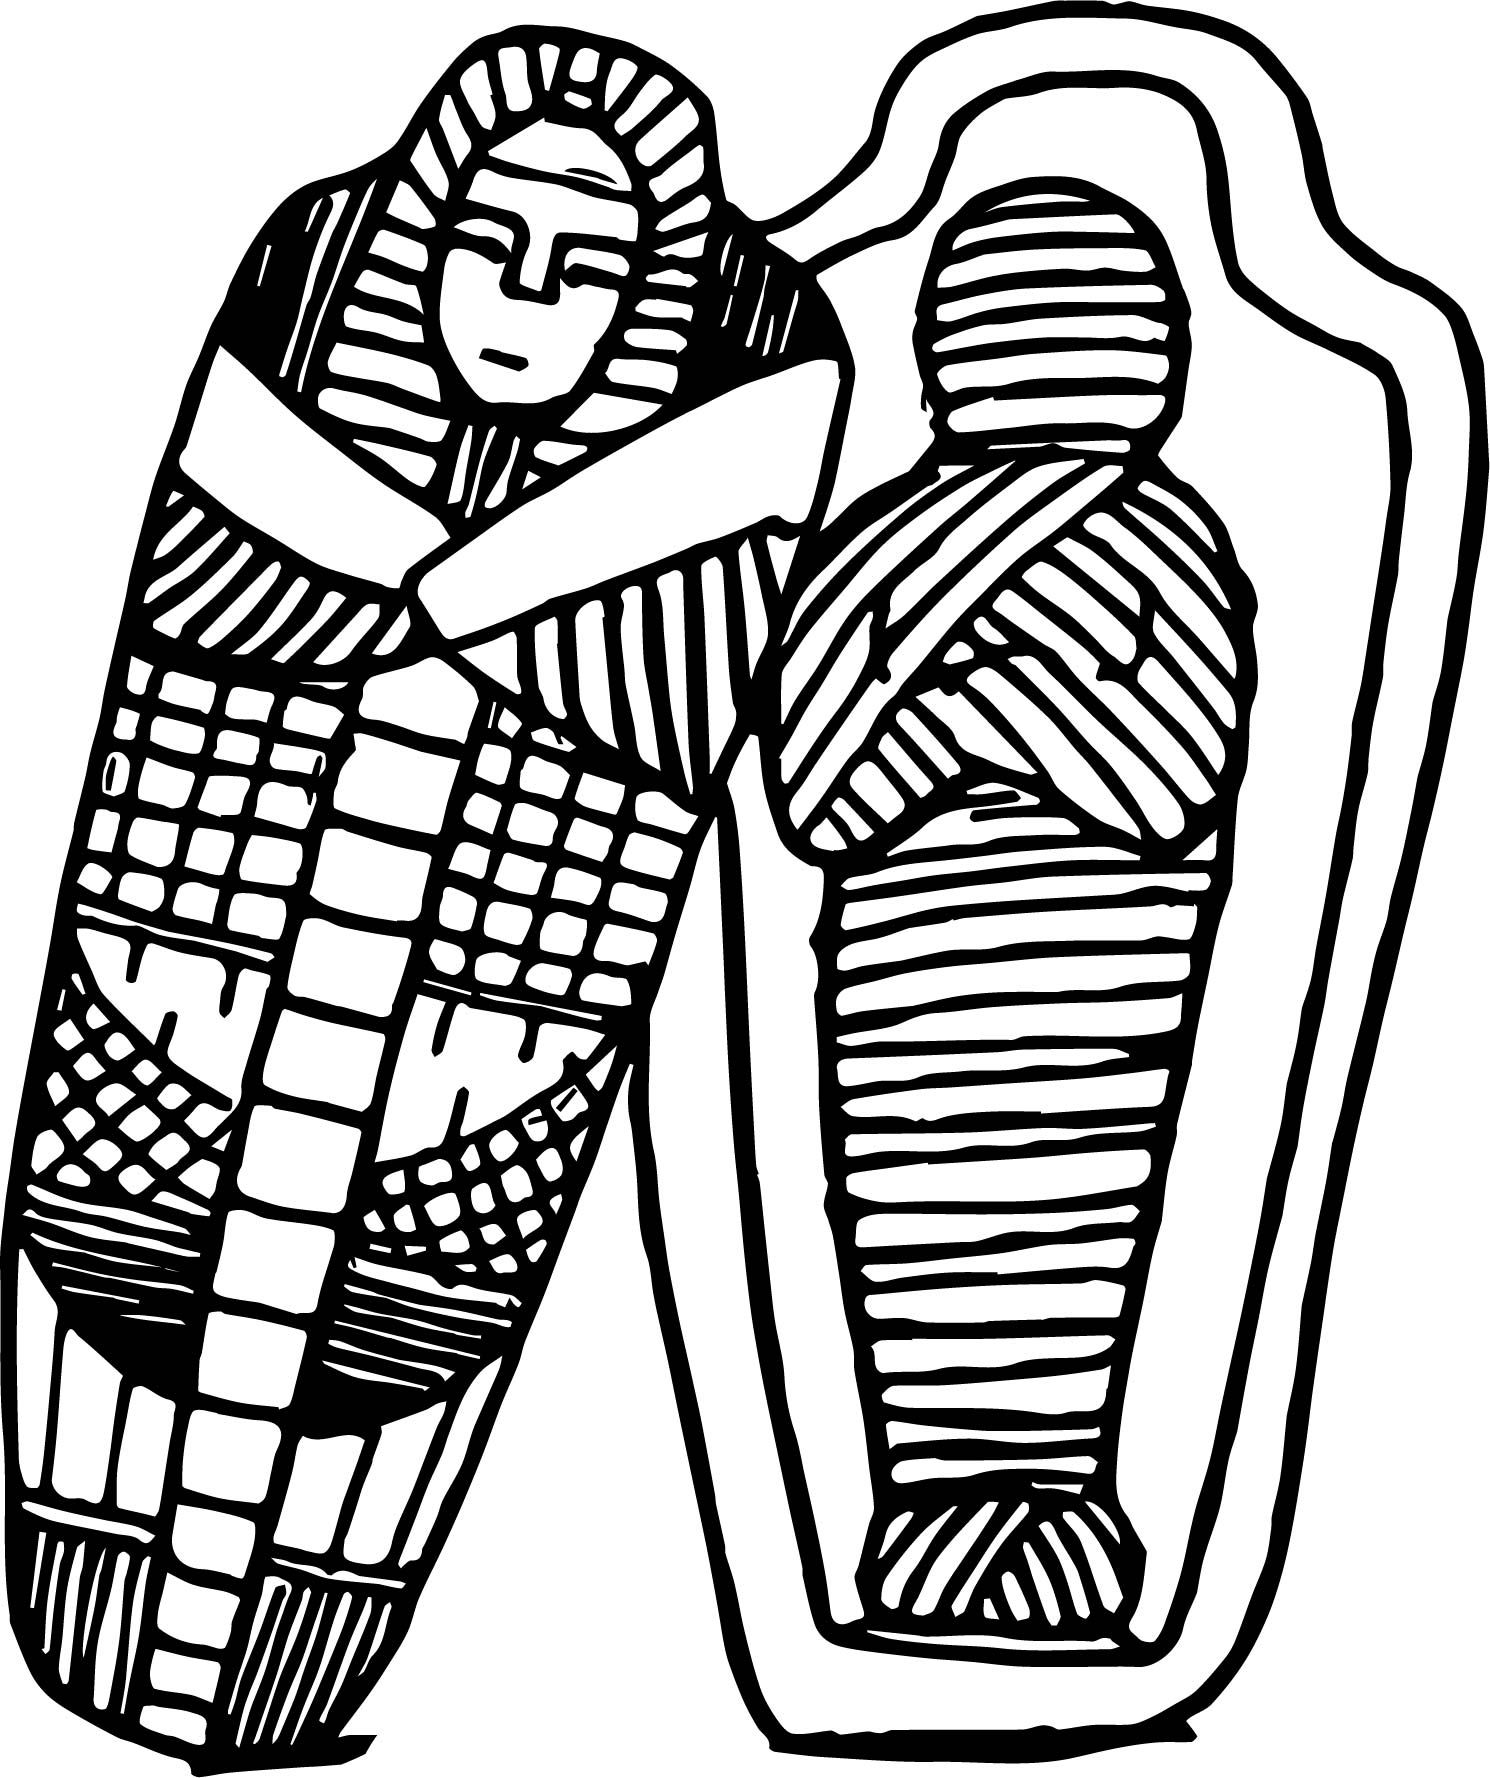 Awesome Sarcophagus Coloring Page Coloring Pages Coloring